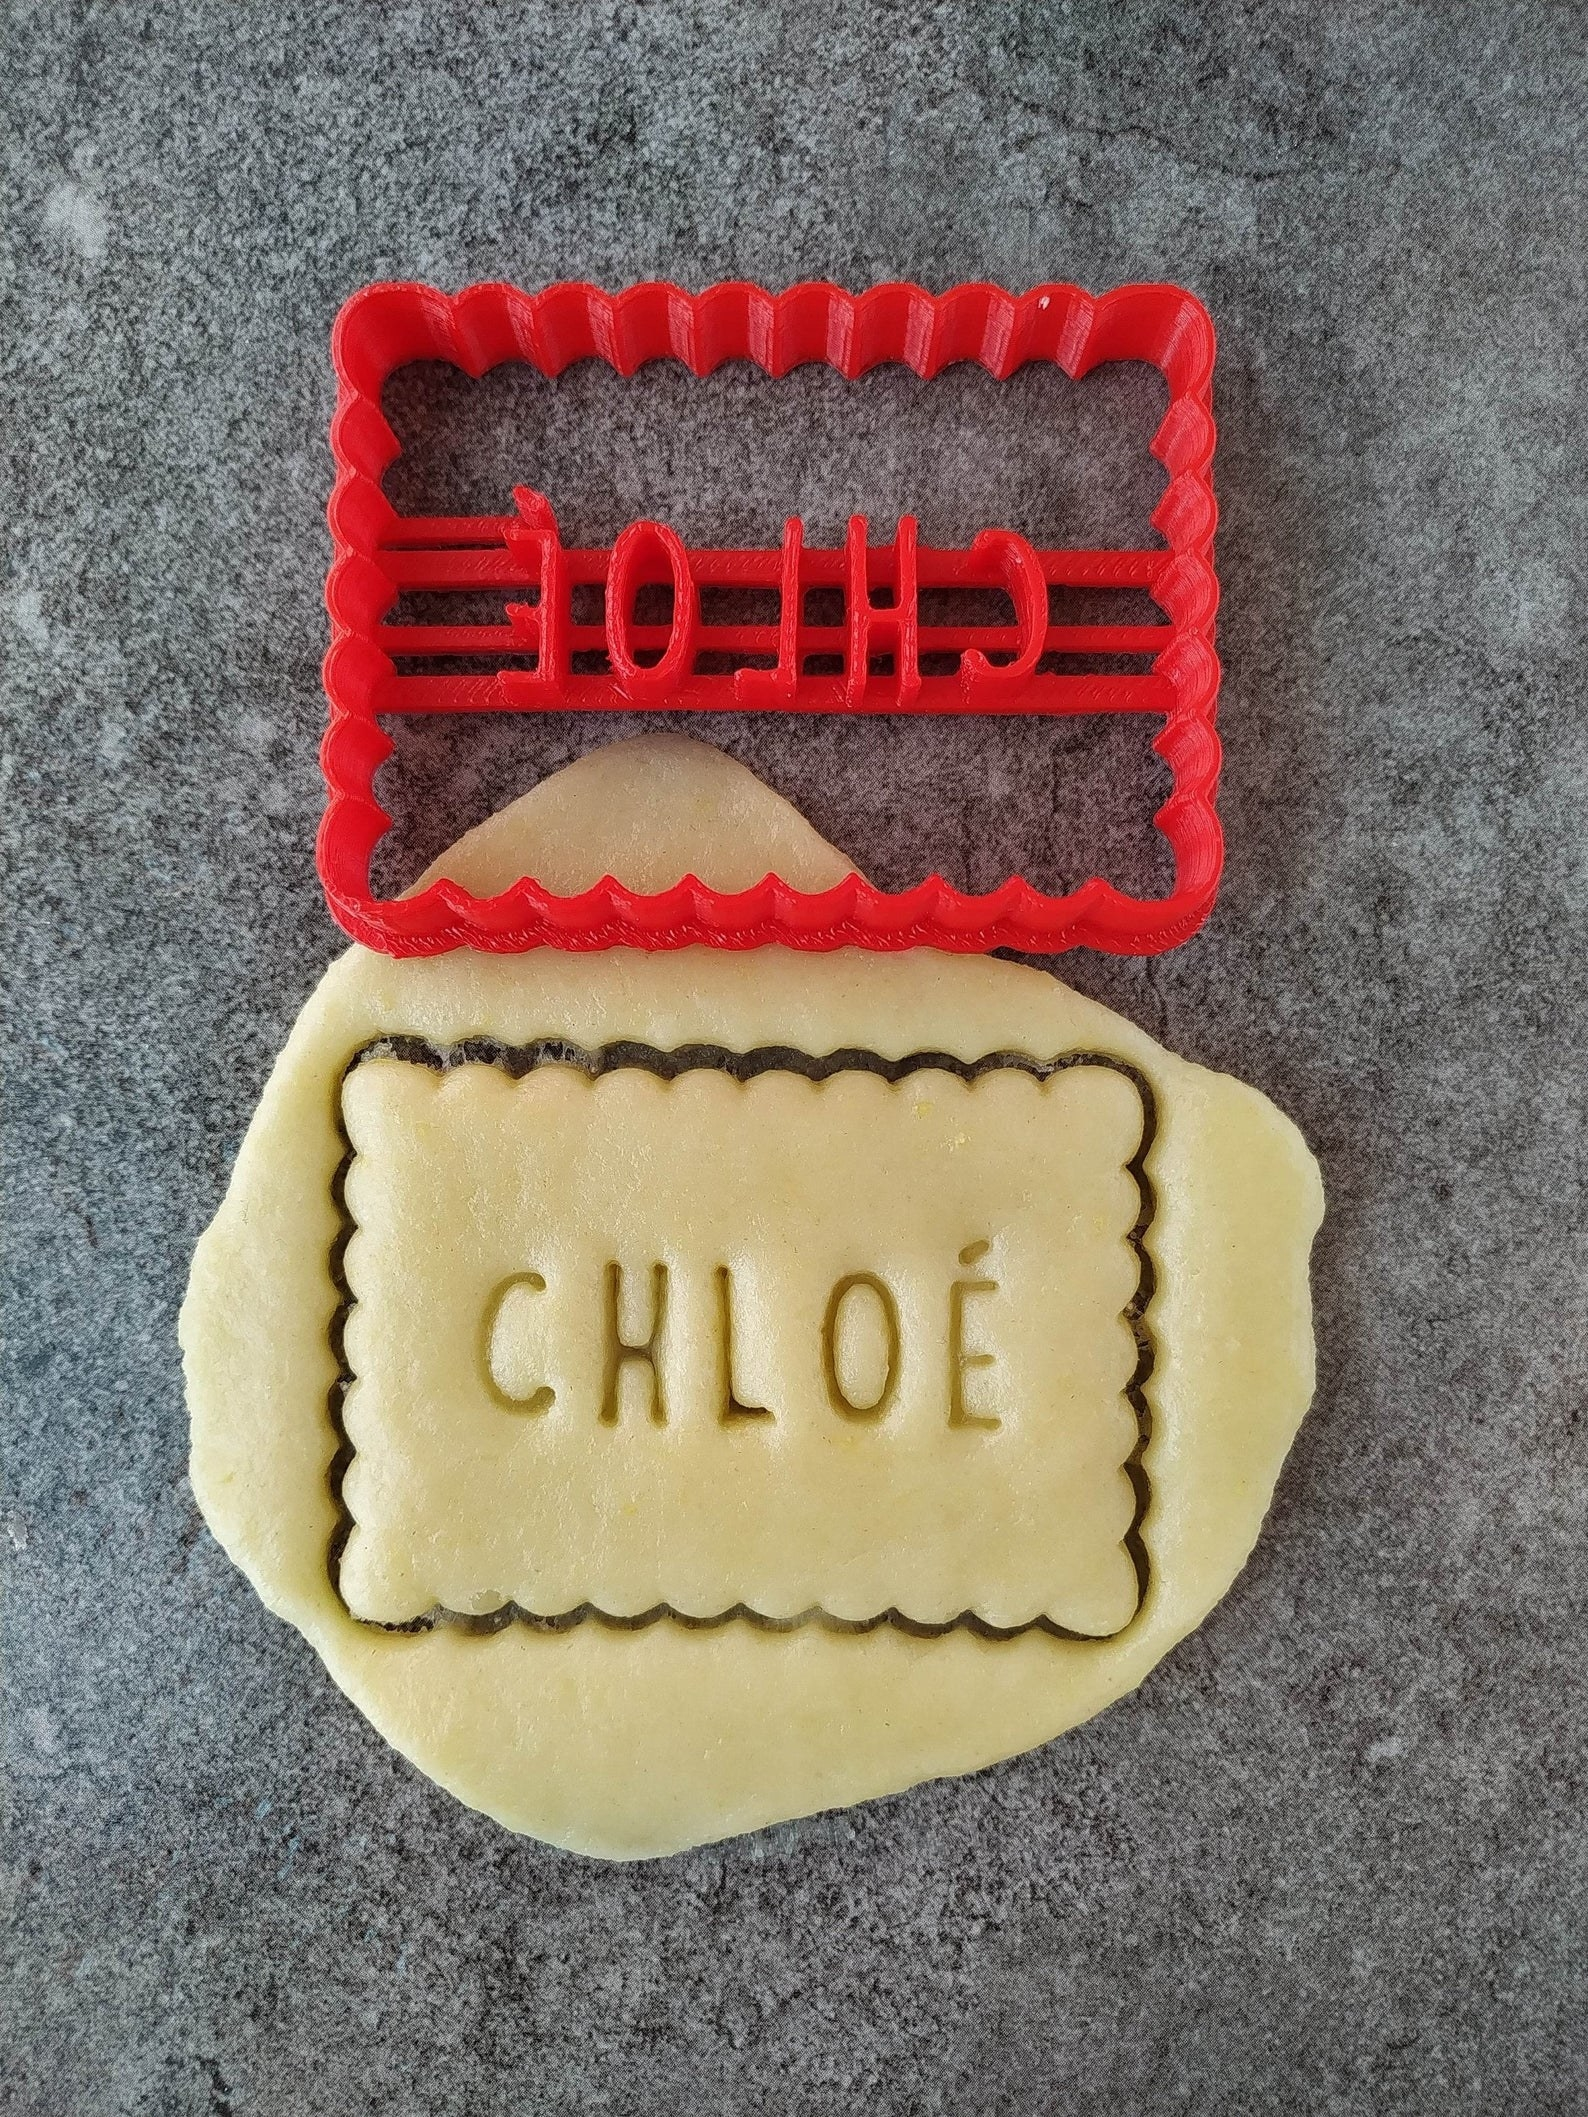 the red cookie cutter personalized to say Chloe